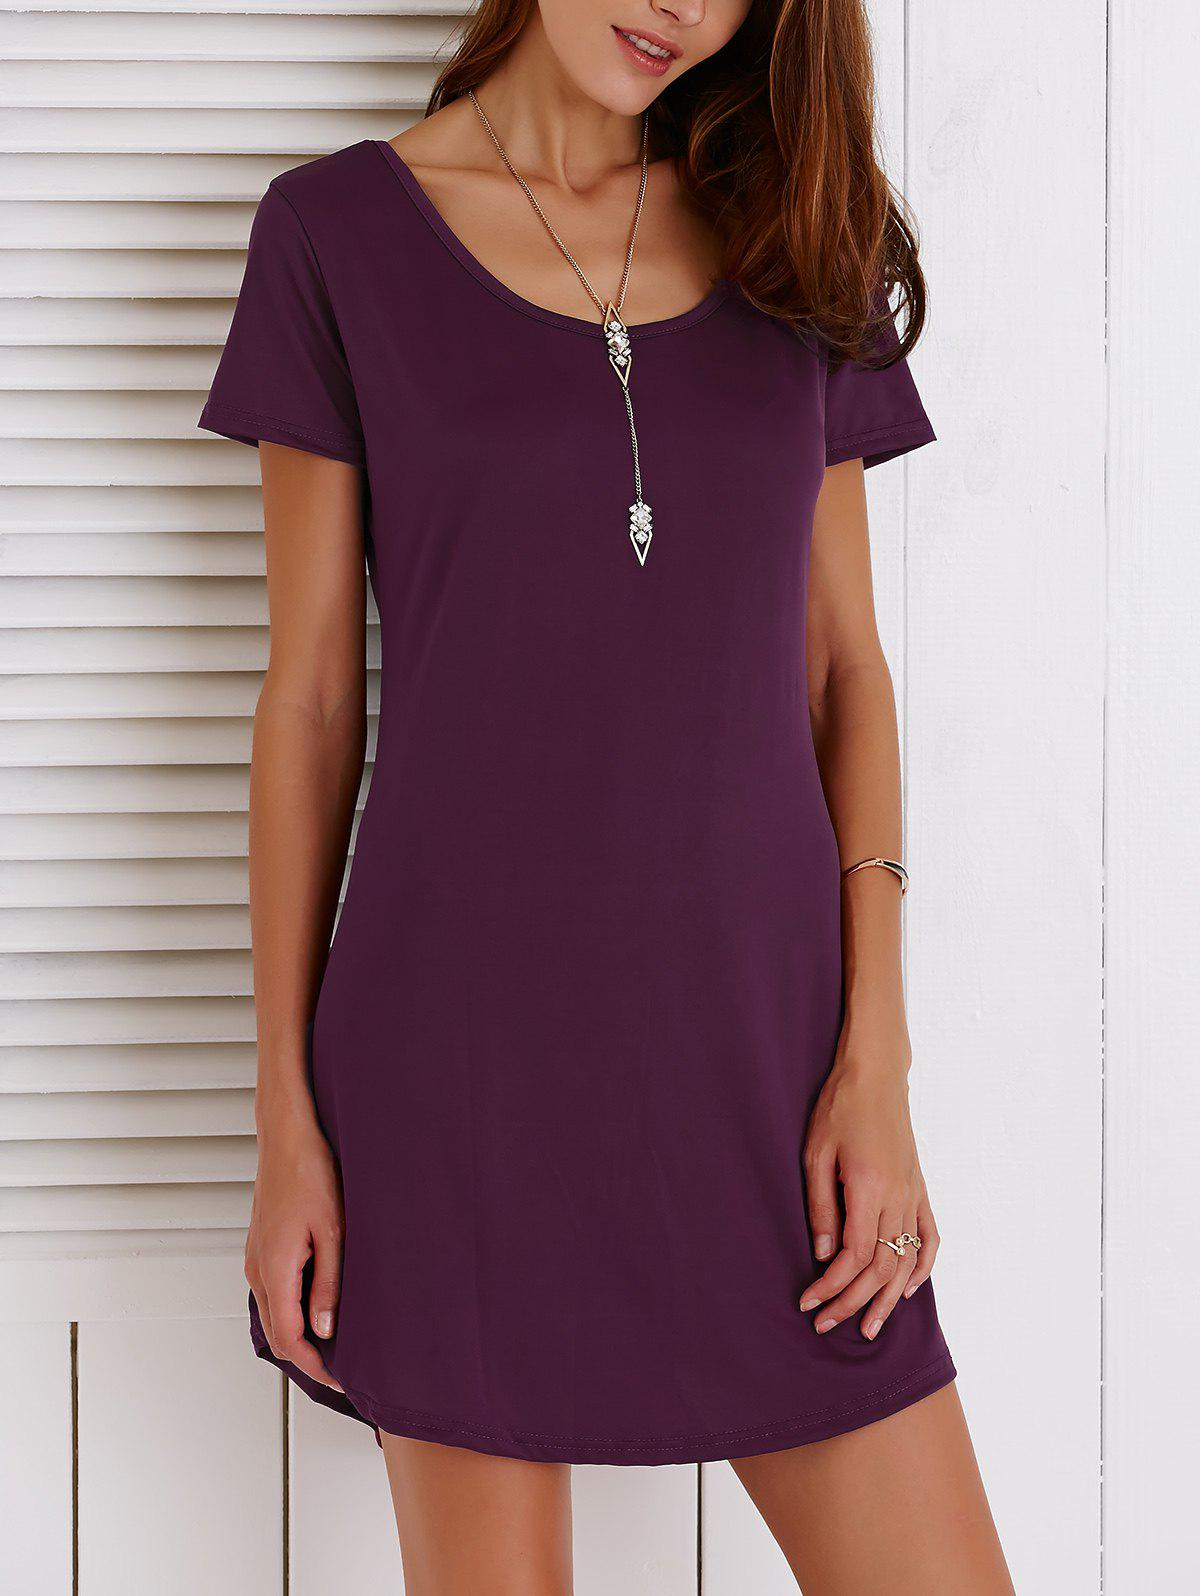 Casual Women's Hollow Out Short Sleeves Scoop Neck Dress